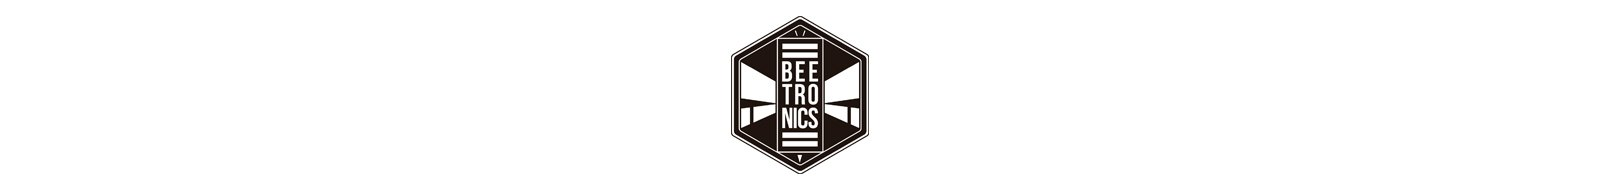 Beetronics Effects Pedals